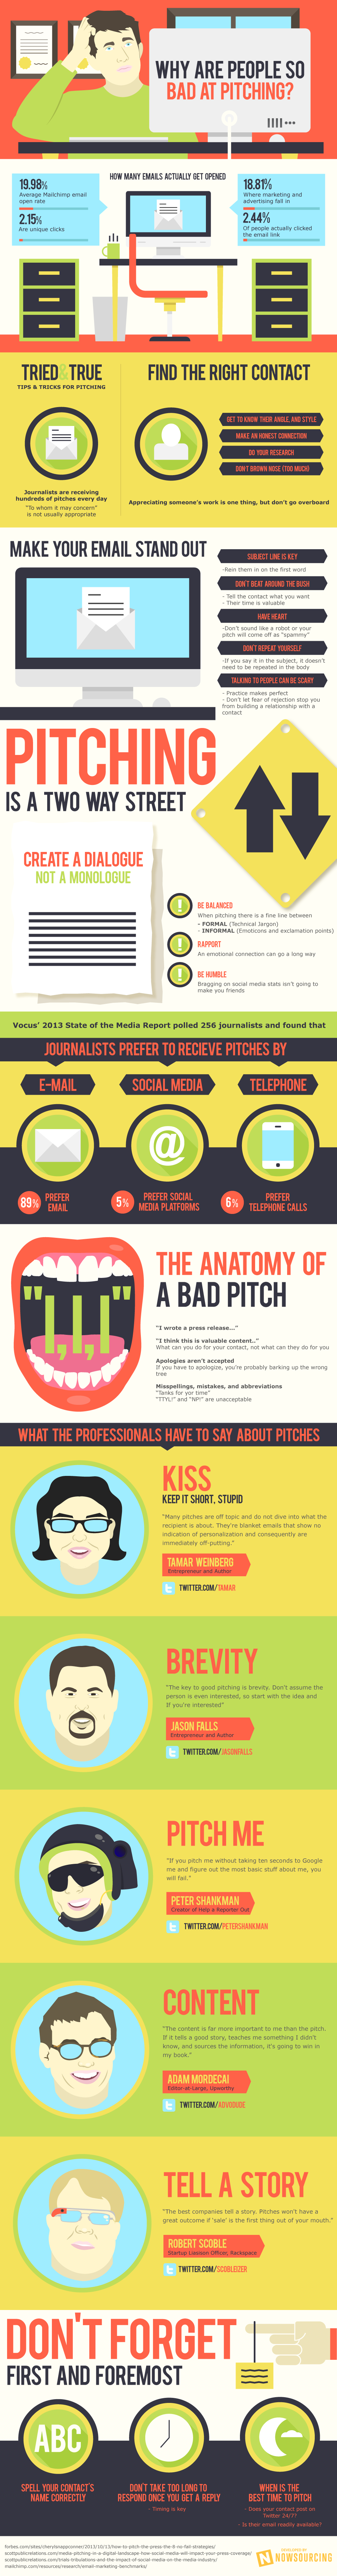 Infographic: Why Are People So Bad At Pitching?